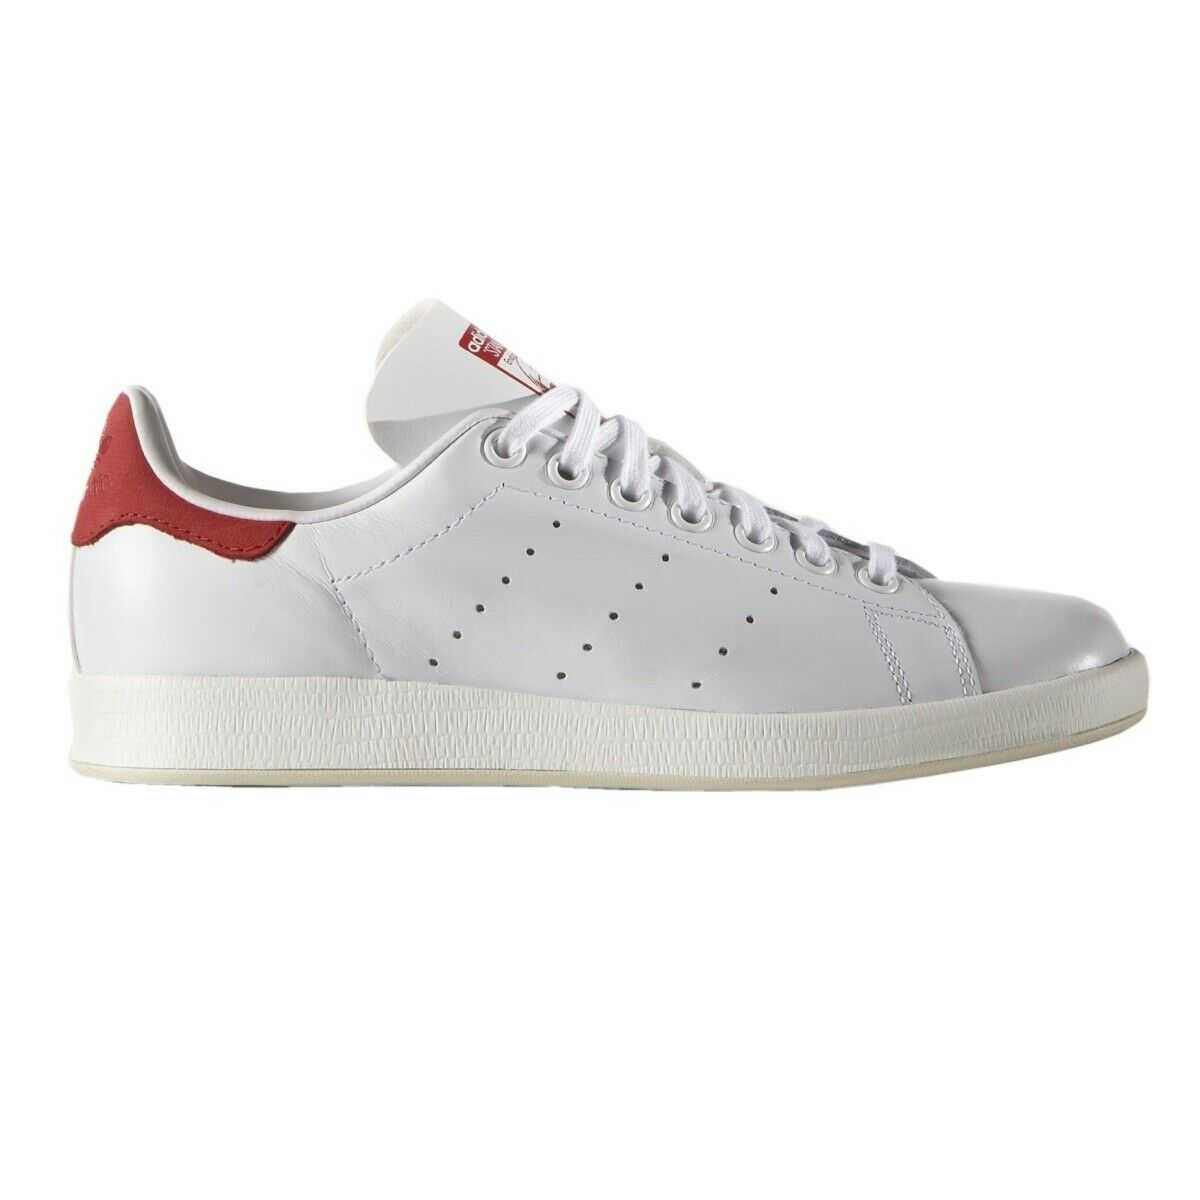 Details about Adidas originals stan smith women luxury sneakers tennis shoes retro show original title